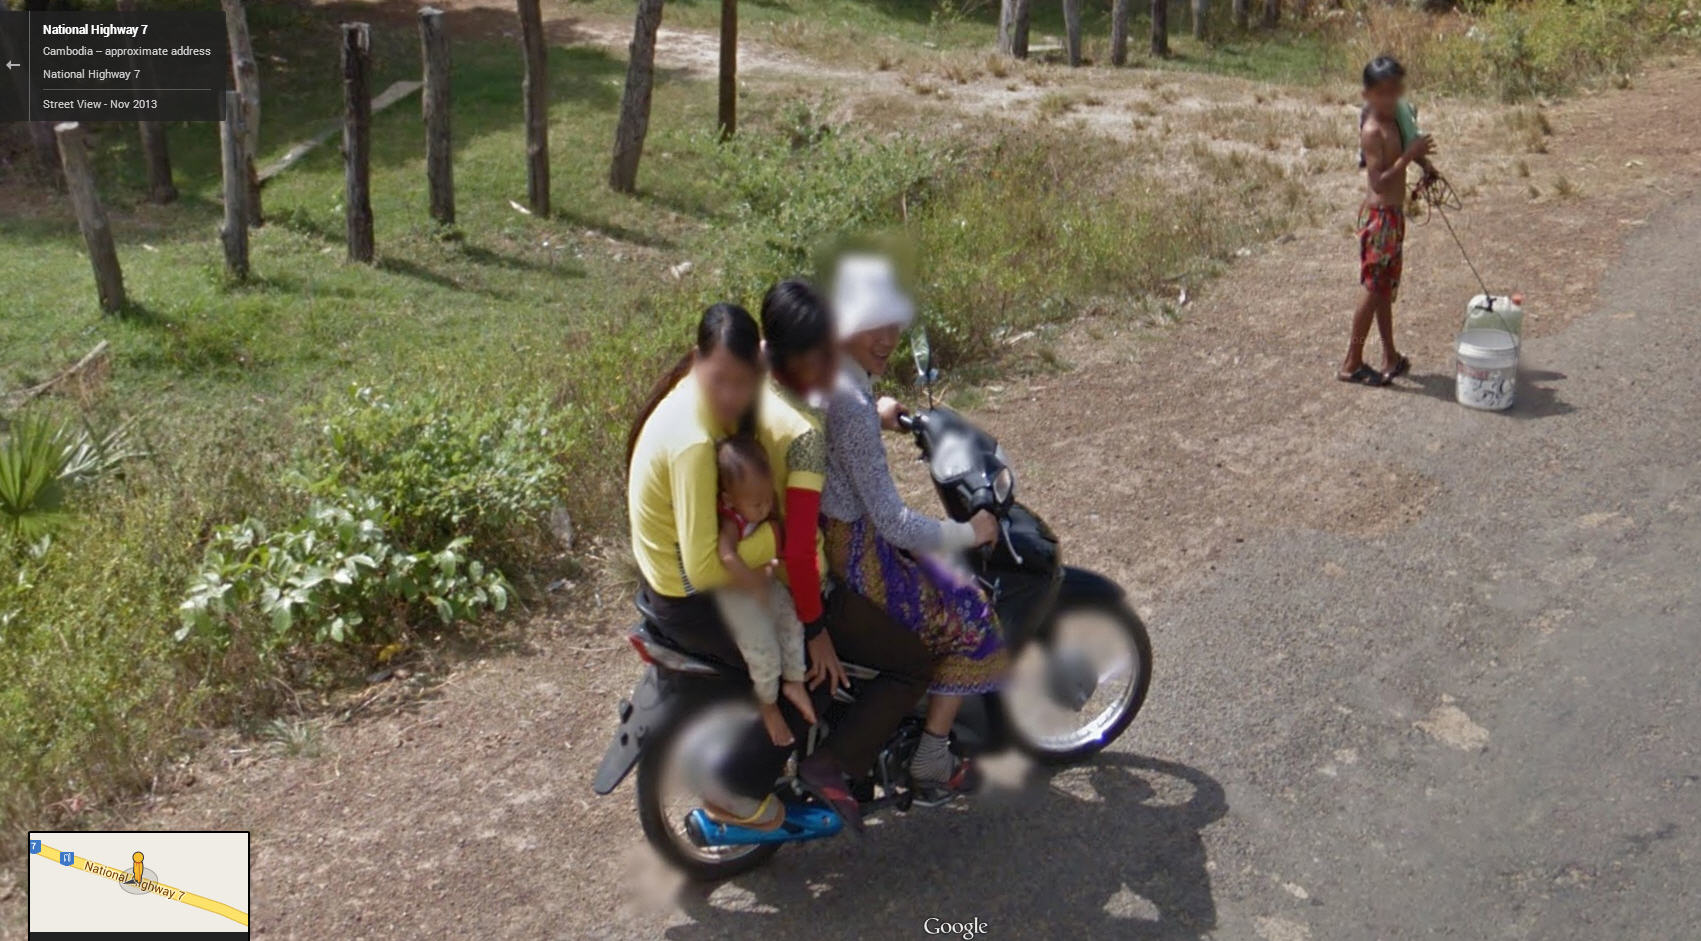 This how they roll in Cambodia